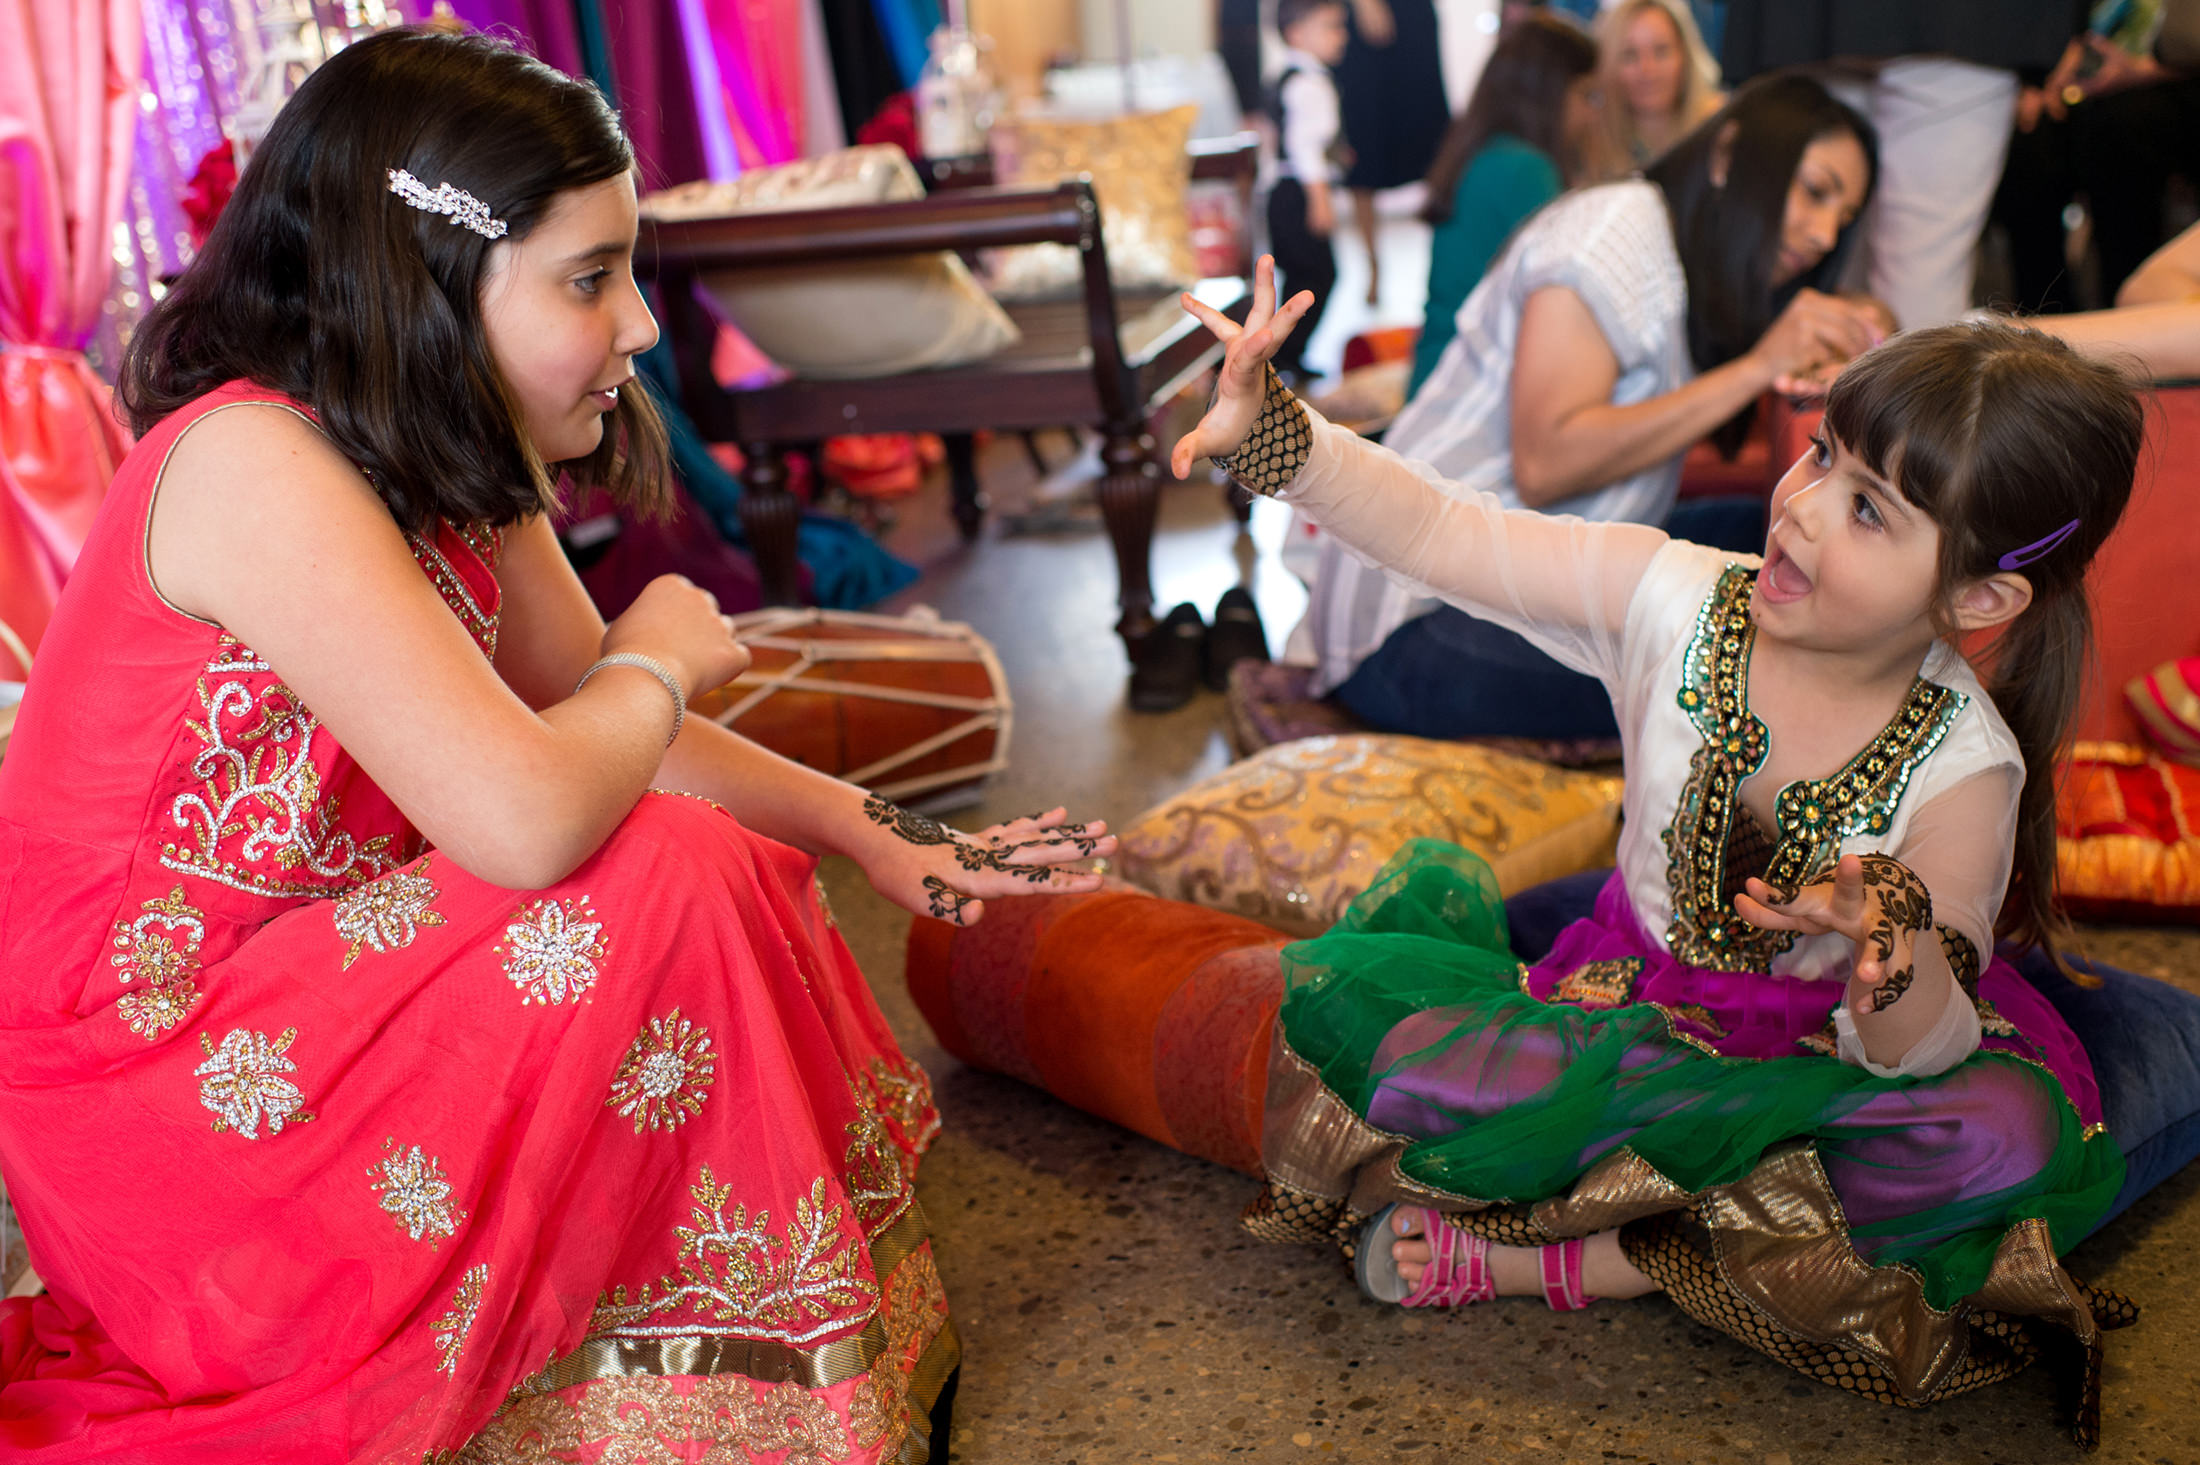 Edmonton_wedding_photographers_enjoy_center_wedding_Kiran_faisal_02.jpg